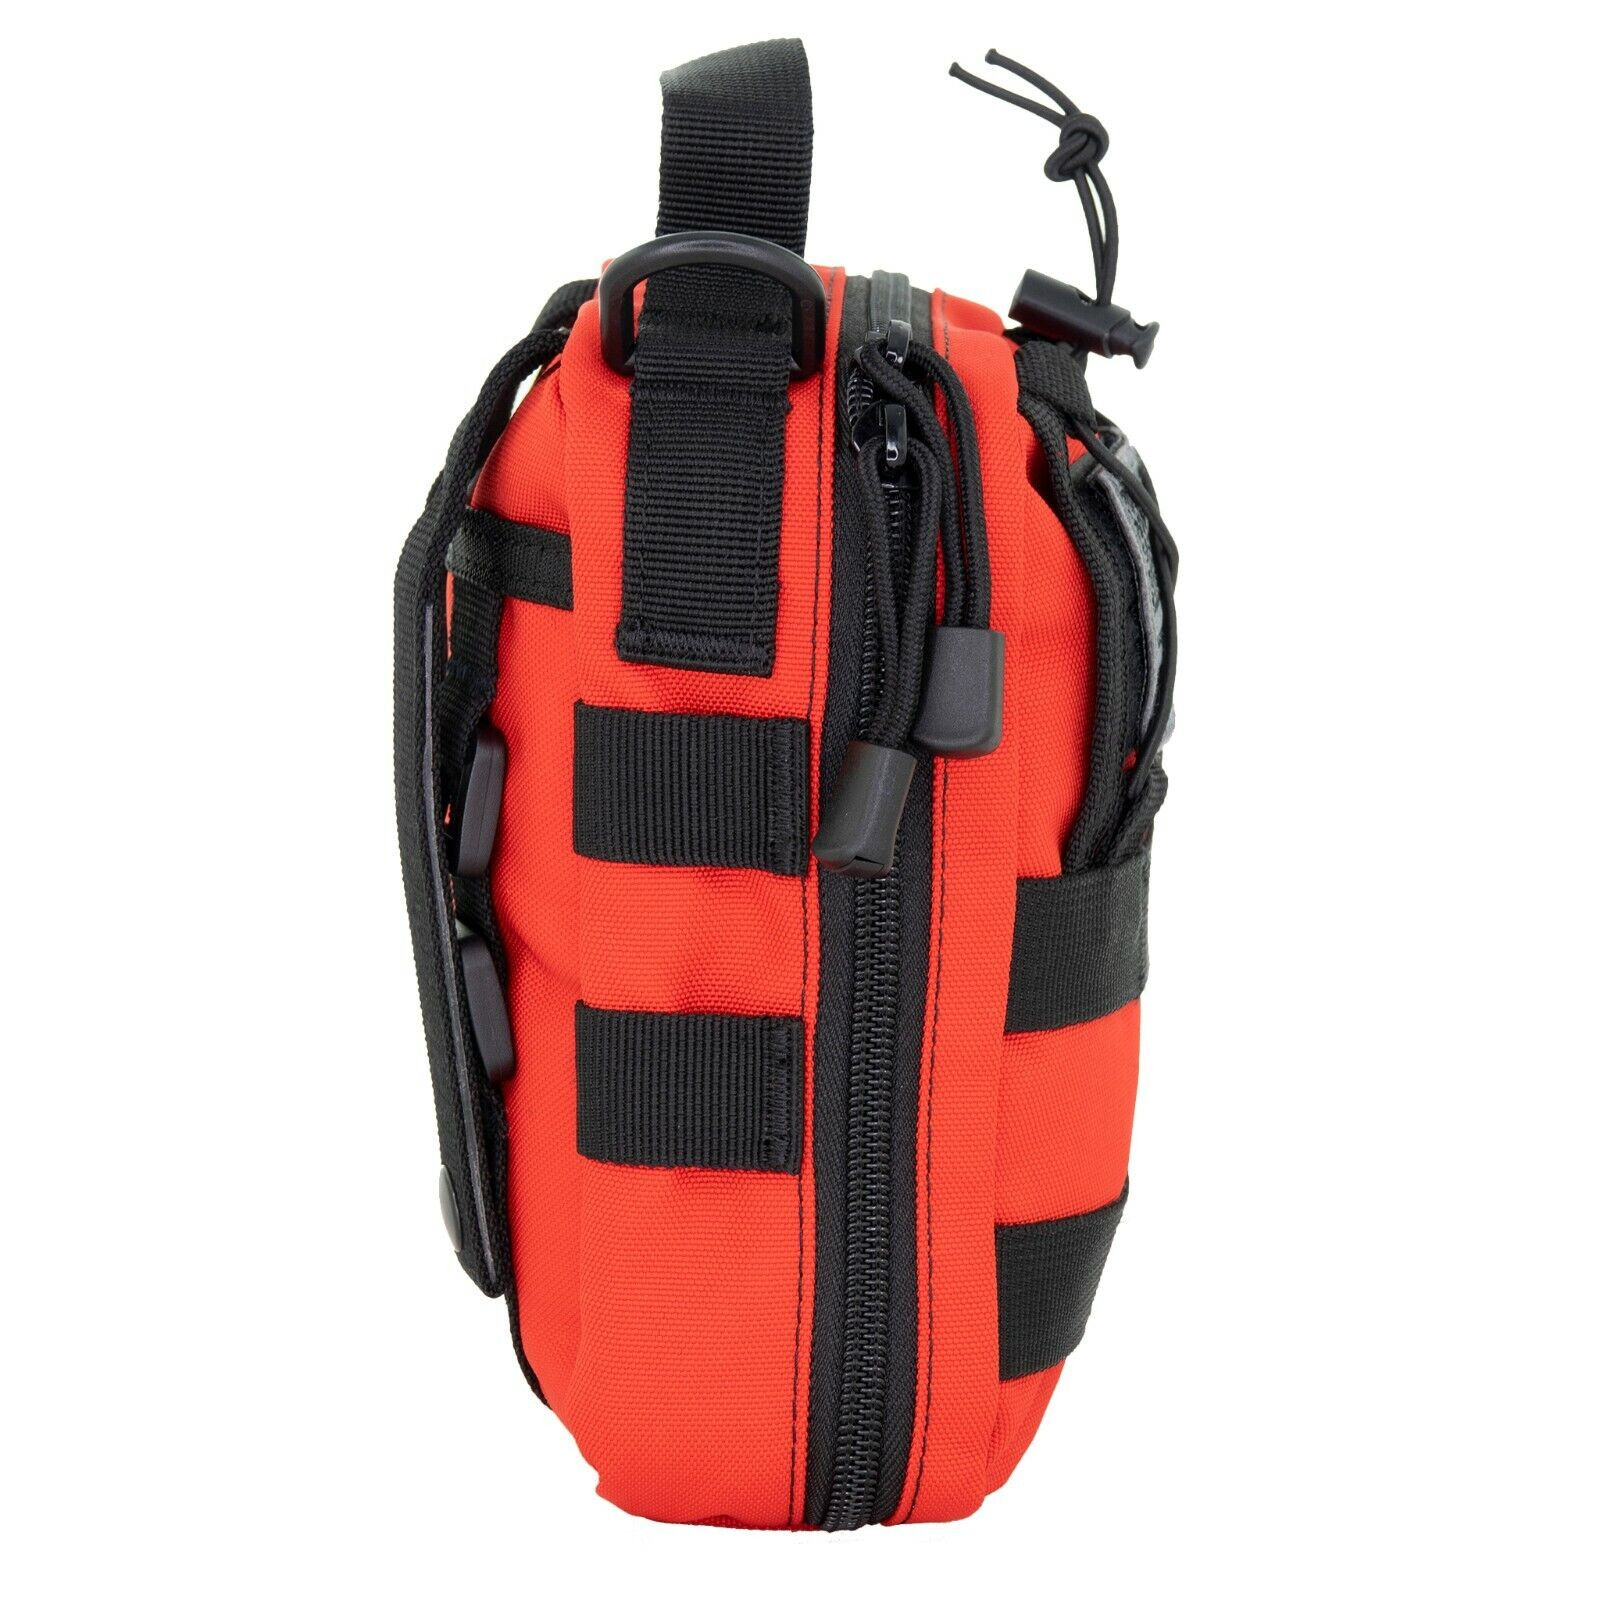 NEW LINE2DESIGN FIRST AID (IFAK) MOLLE POUCH - EMERGENCY MEDICAL TRAUMA BAG - RED